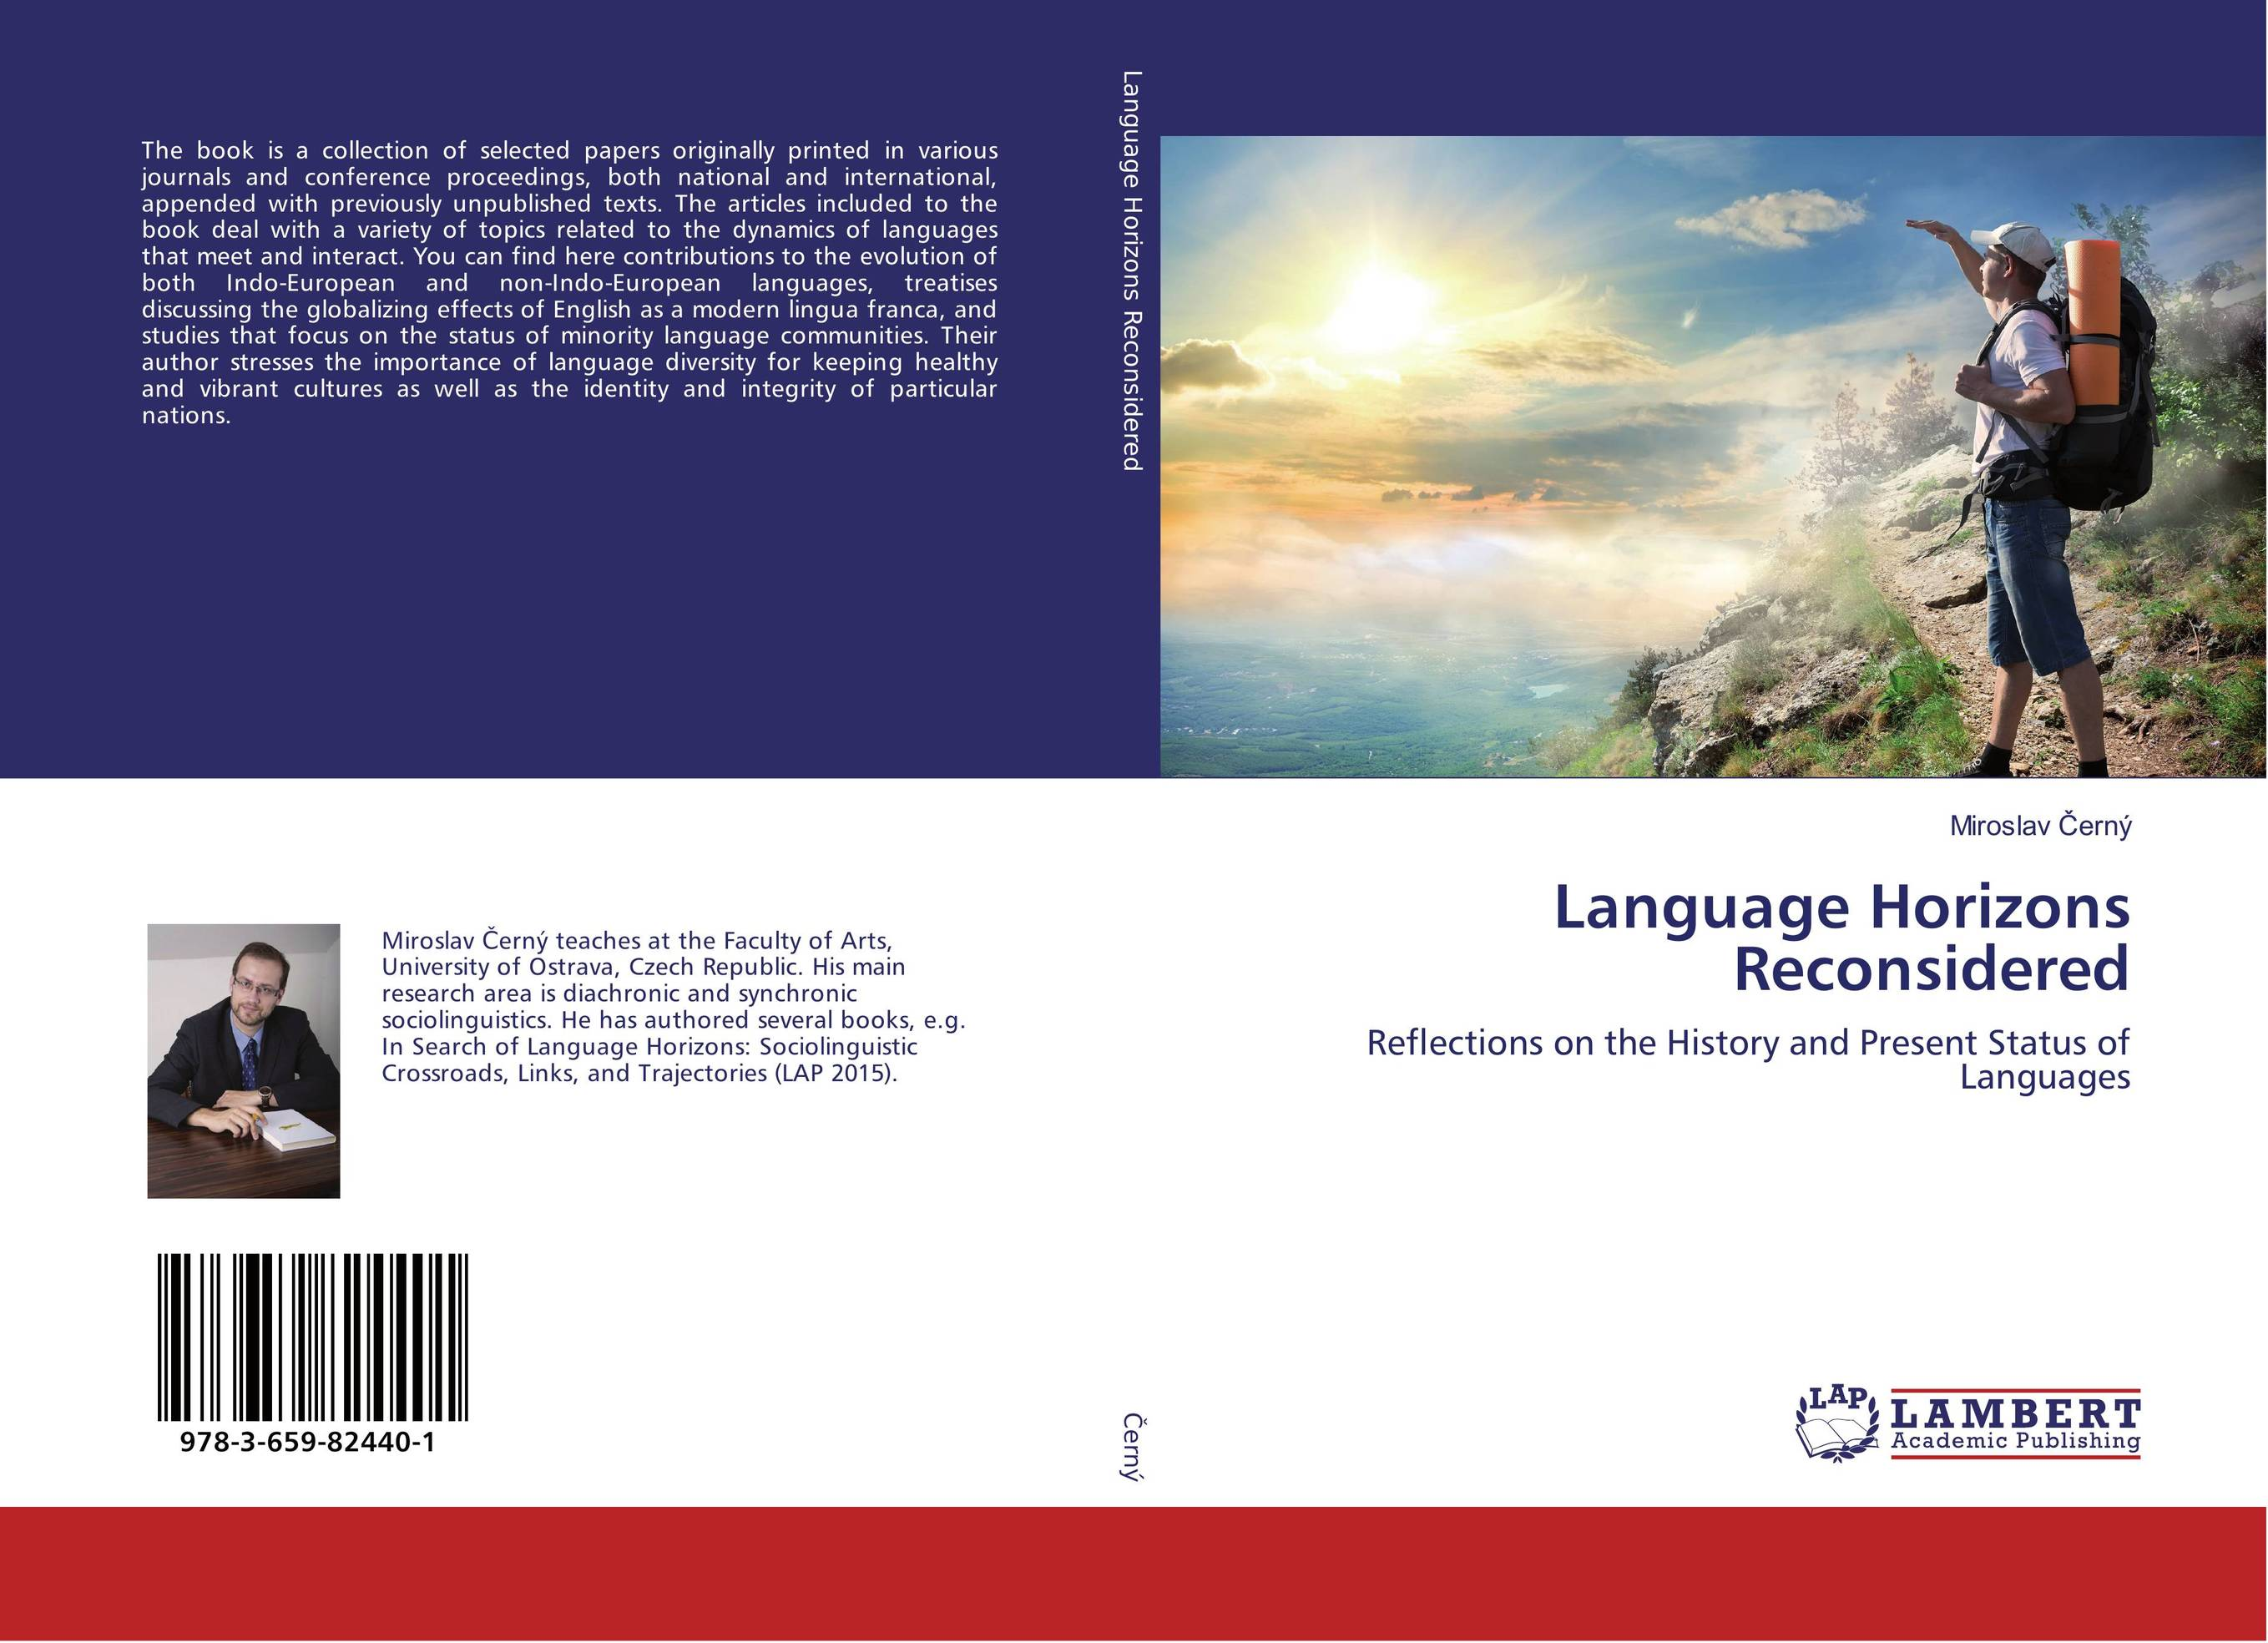 Language Horizons Reconsidered сборник статей resonances science proceedings of articles the international scientific conference czech republic karlovy vary – russia moscow 11–12 february 2016